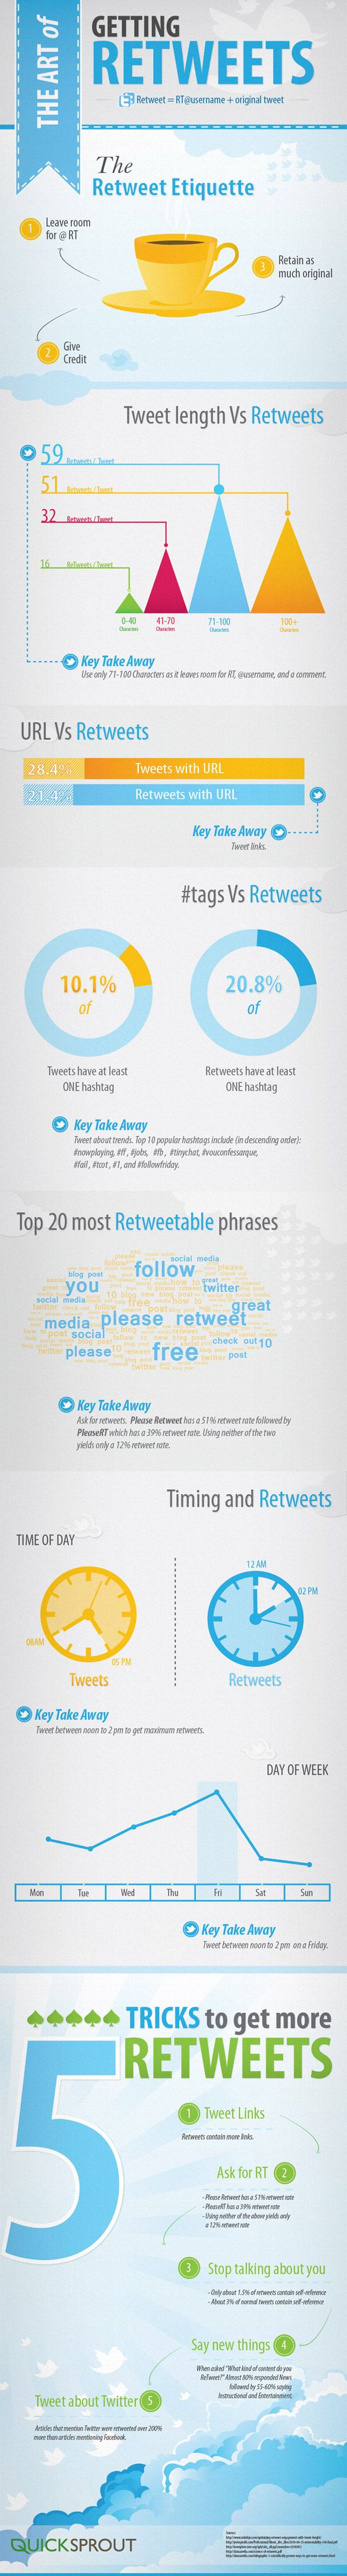 Which tweets get retweets?  Is there a best length, time, or style of tweet that will get more retweets?  These questions and more are answered on this infographic from QuickSprout. Get Retweets! Top 10 Tips to Rock the Retweet [infographic] Th